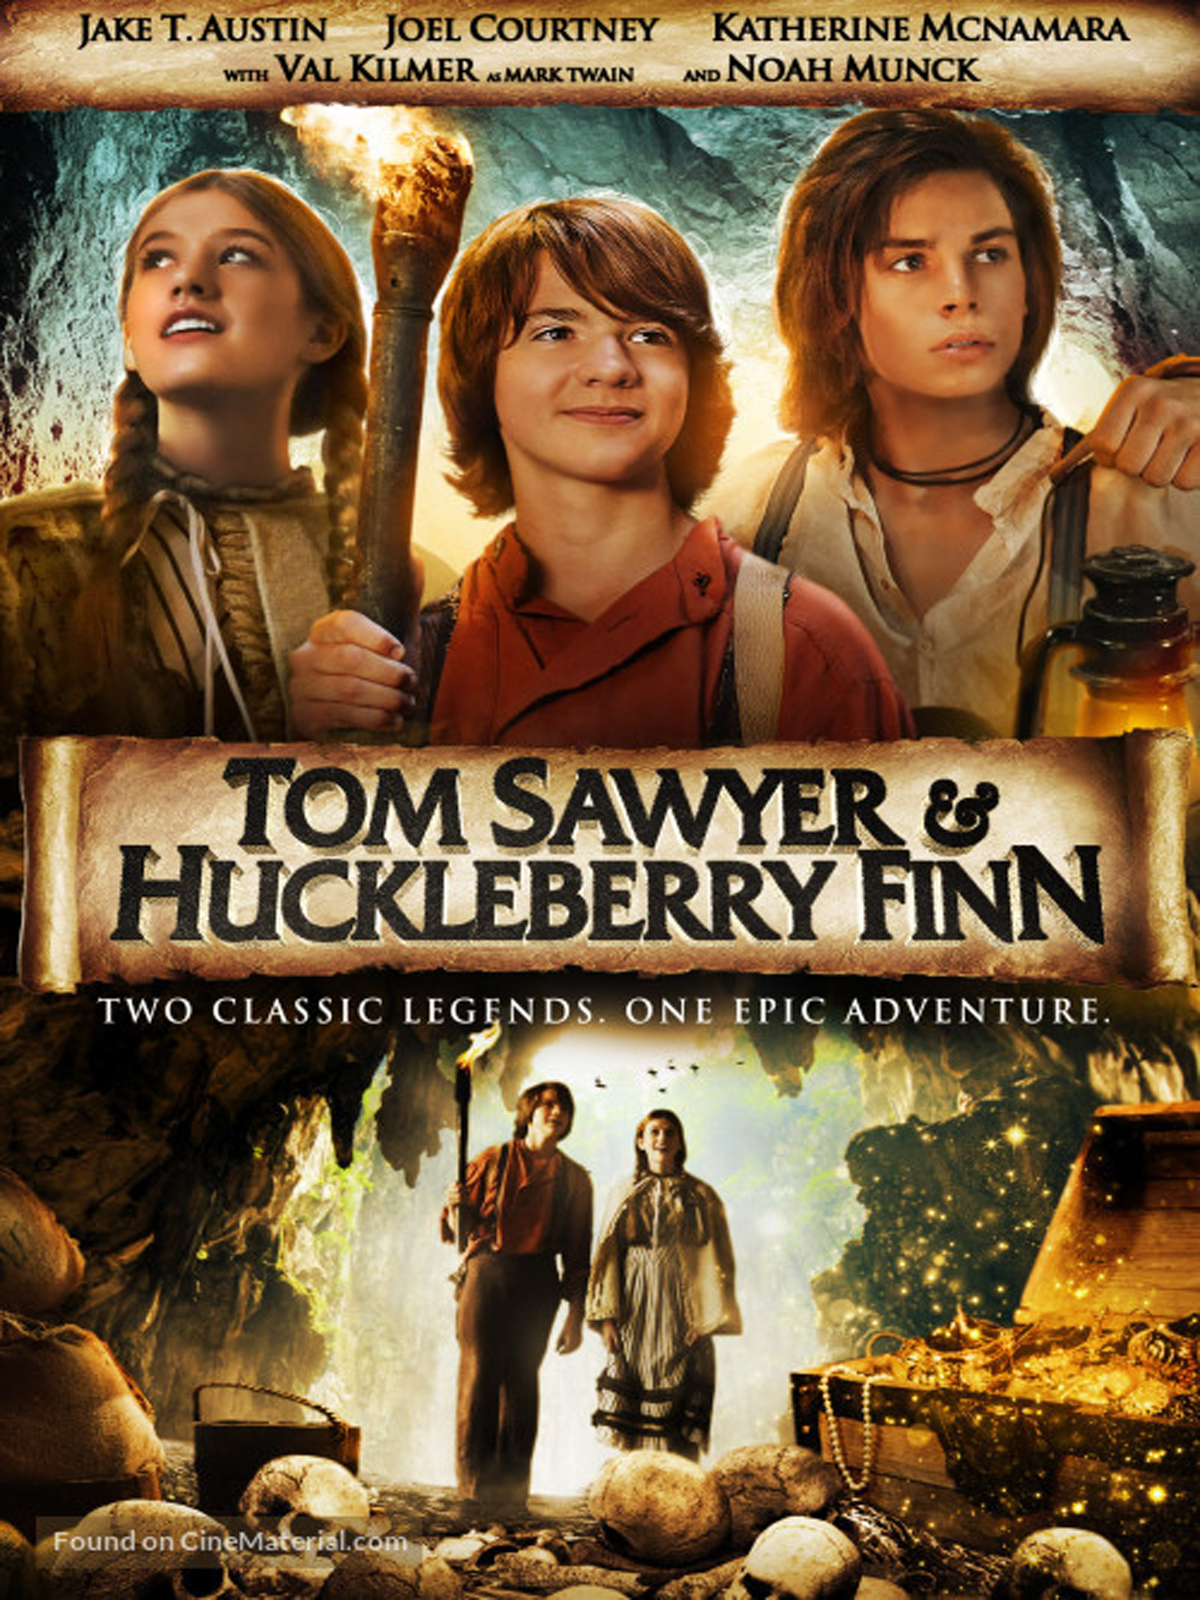 Tom Huckleberry Finn